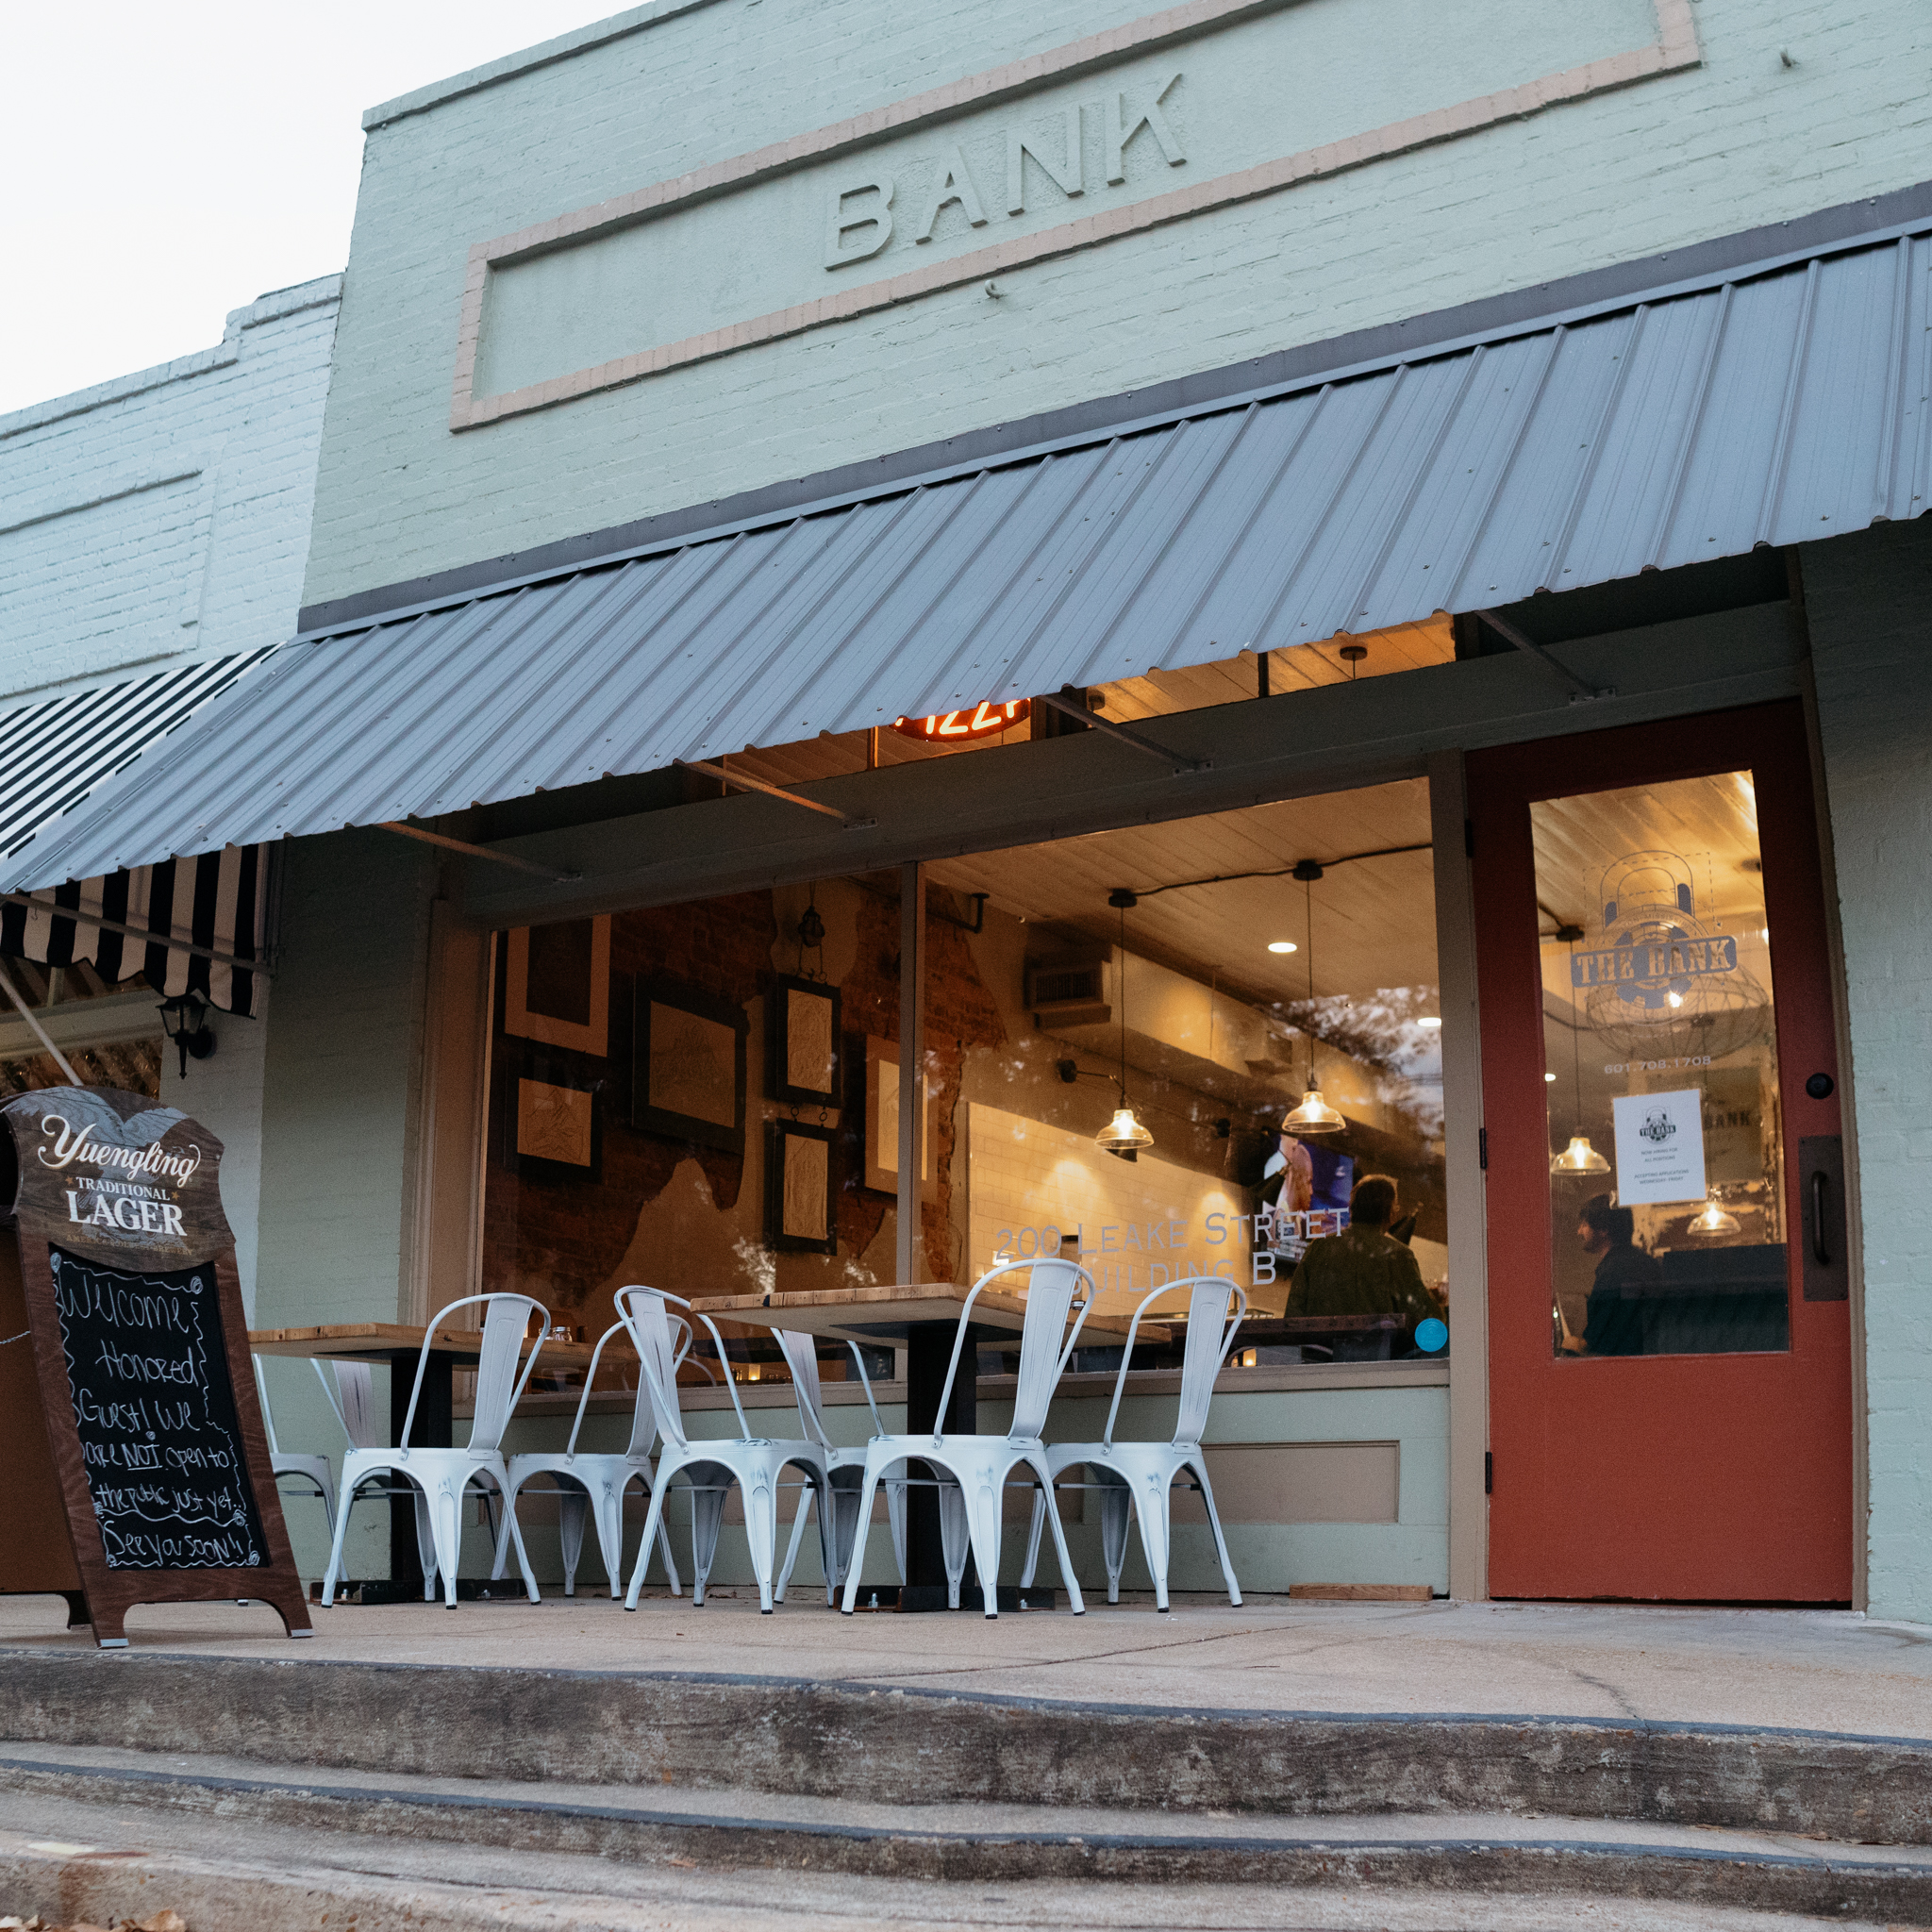 The Bank is a full-service restaurant and bar serving Mississippi-style pizza.